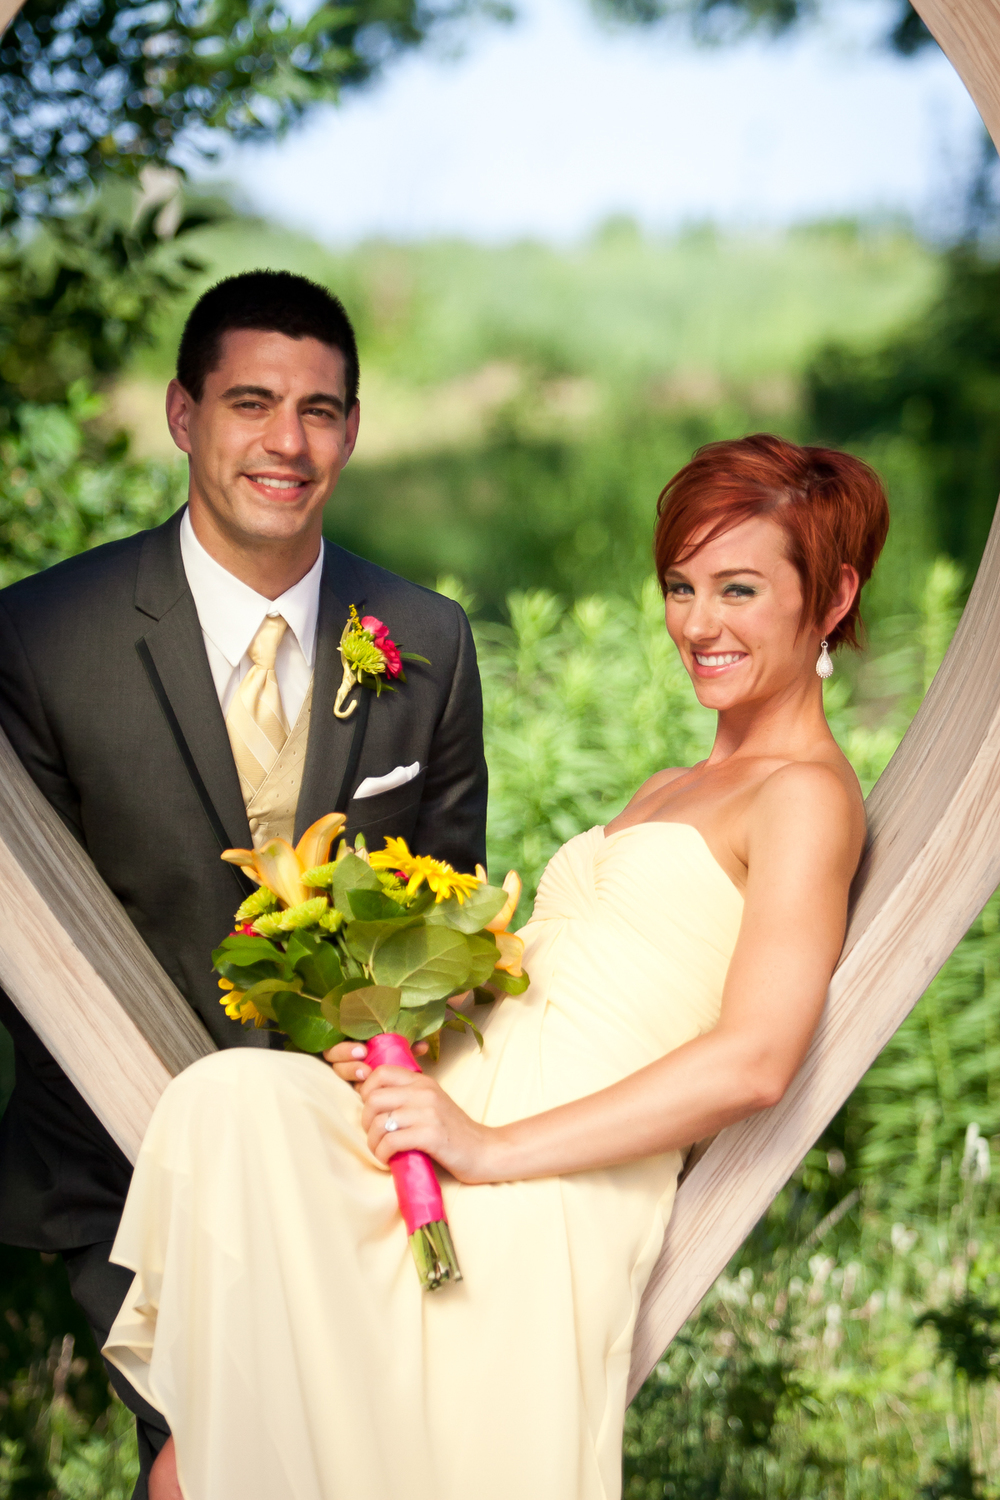 Shannon_Nick_Wedding_MC2305.jpg